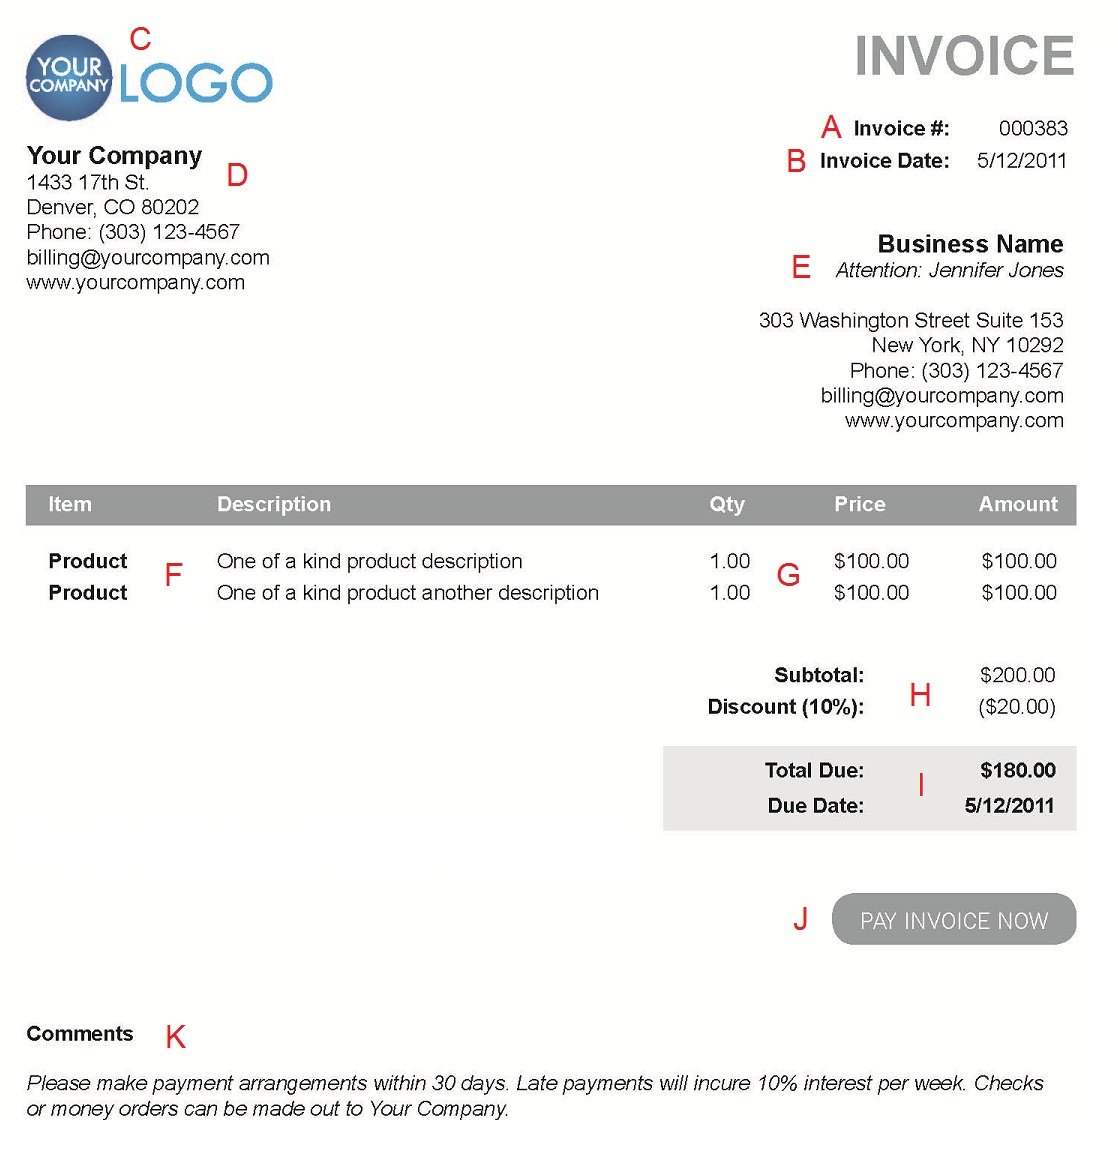 Aaaaeroincus  Fascinating The  Different Sections Of An Electronic Payment Invoice With Remarkable A  With Easy On The Eye What Receipts Are Tax Deductible Also Receipt Stub In Addition Print Walmart Receipt And Receipt Reference Number As Well As Payment Receipts Additionally Why Save Receipts From Paysimplecom With Aaaaeroincus  Remarkable The  Different Sections Of An Electronic Payment Invoice With Easy On The Eye A  And Fascinating What Receipts Are Tax Deductible Also Receipt Stub In Addition Print Walmart Receipt From Paysimplecom